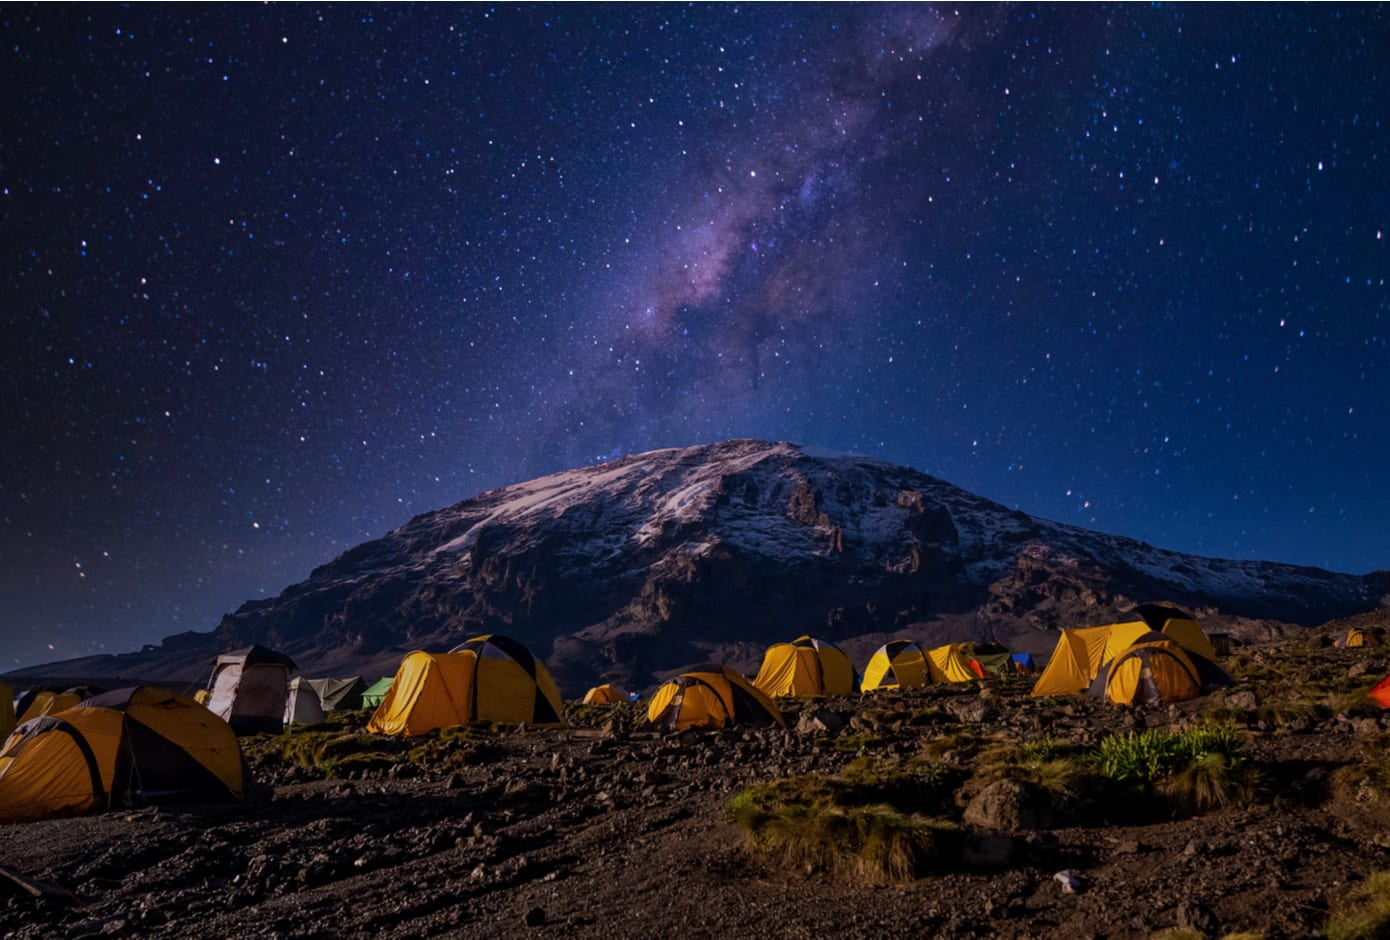 Night view of the milky way over mount Kilimanjaro, Tanzania with many tents at the base camp.